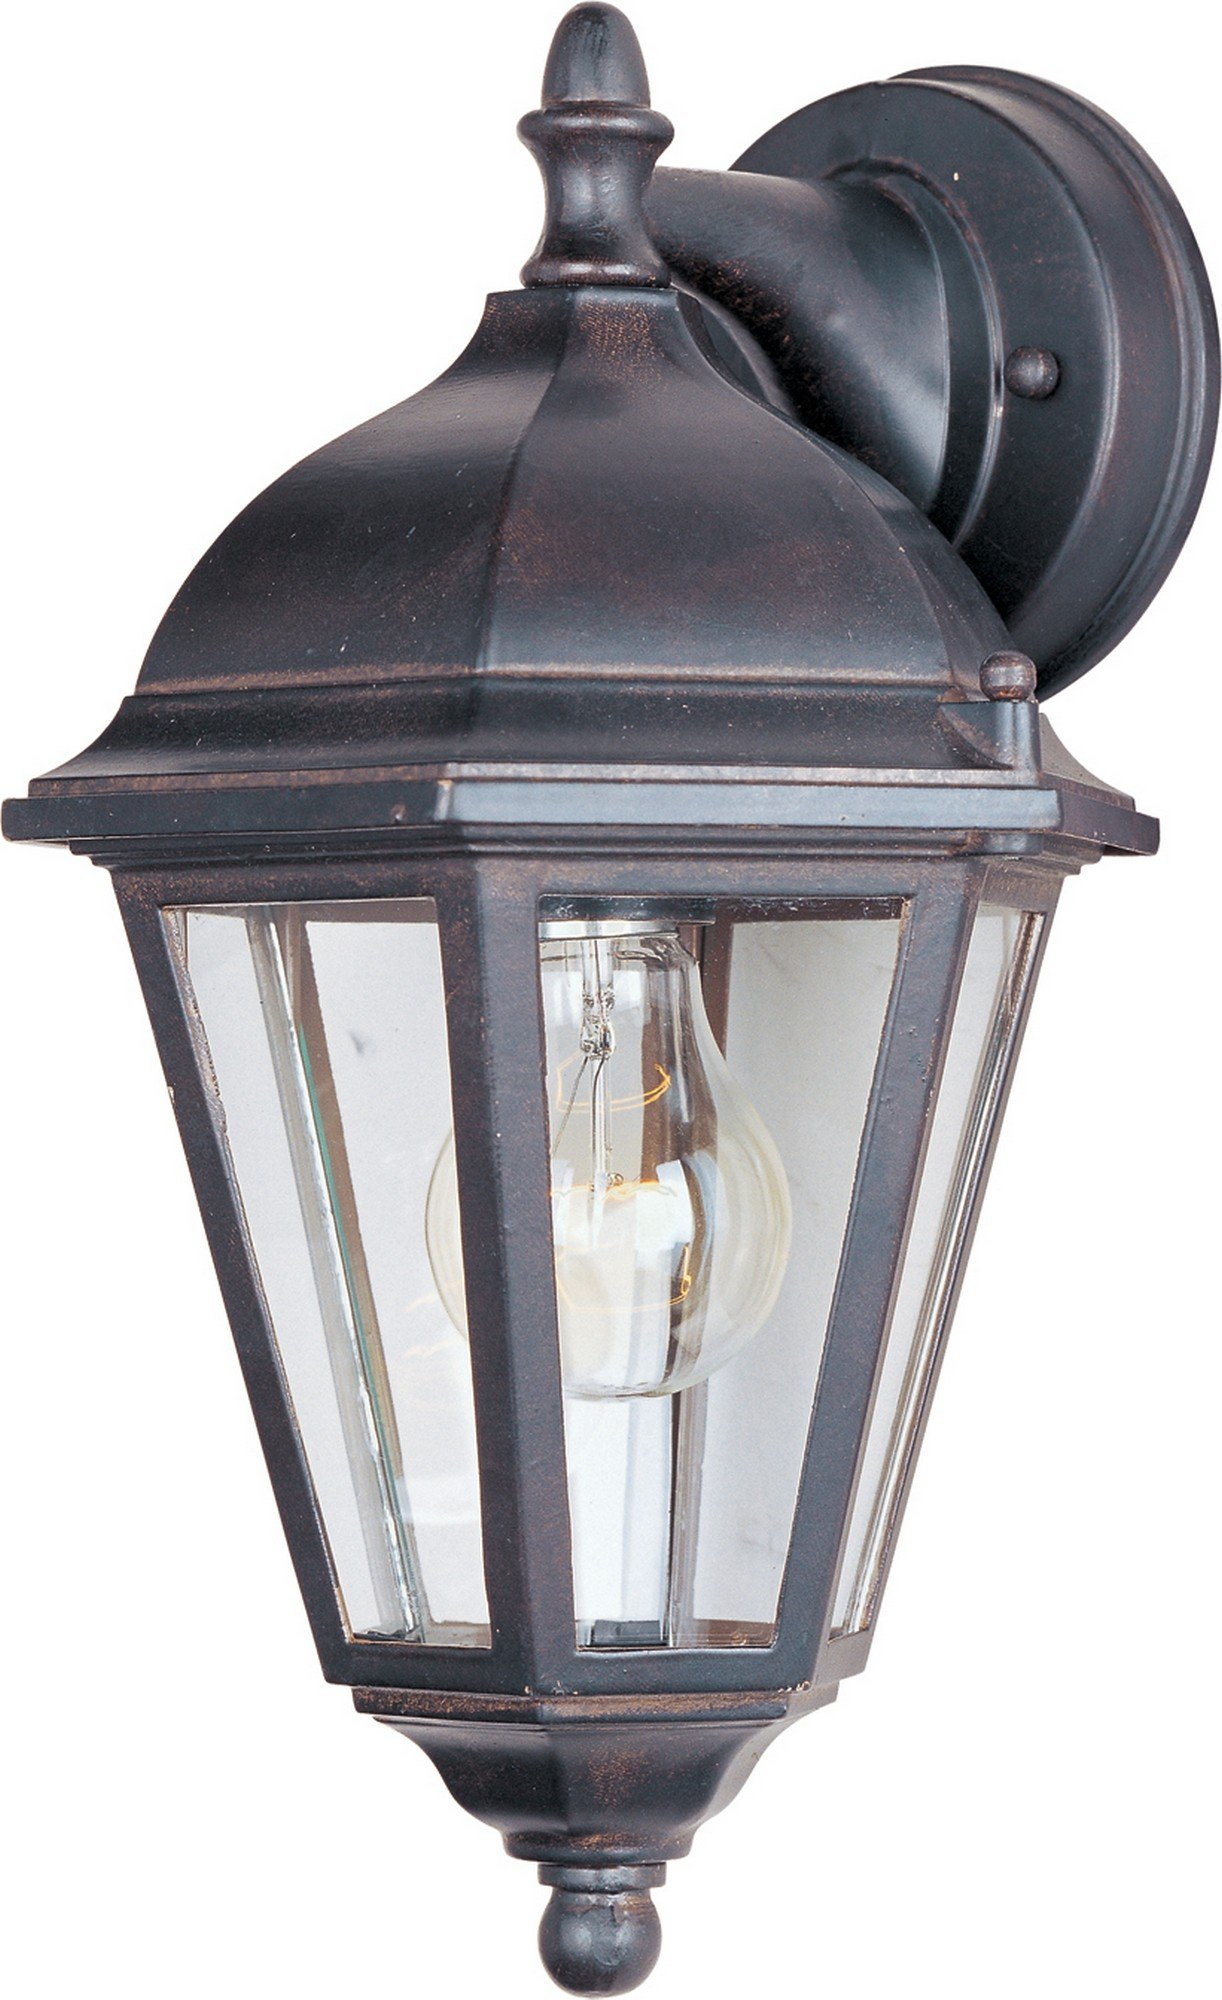 Maxim 1000EB Westlake Cast 1-Light Outdoor Wall Lantern, Empire Bronze Finish, Clear Glass, MB Incandescent Incandescent Bulb , 60W Max., Dry Safety Rating, Standard Dimmable, Glass Shade Material, 6048 Rated Lumens by Maxim Lighting (Image #1)